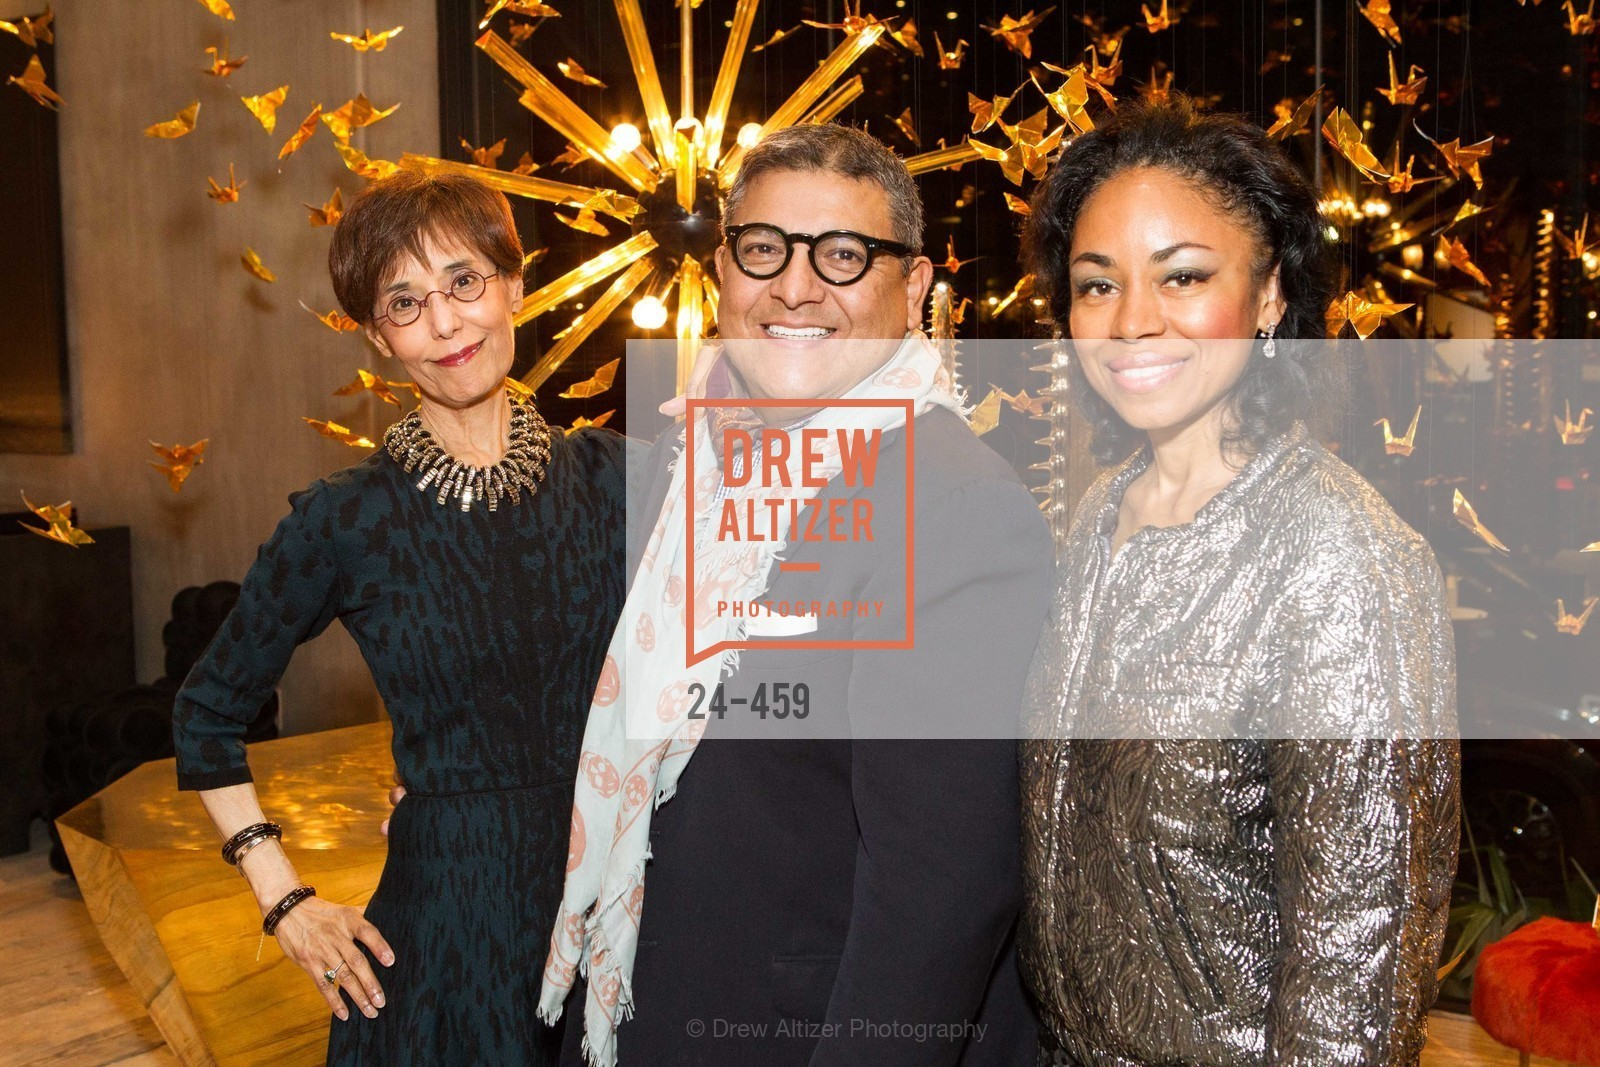 Beatrice Wood, Riccardo Benavides, Tanya Powell, 2014 SAN FRANCISCO BALLET OPENING NIGHT GALA Patron and Sponsor Reception, US. US, January 14th, 2014,Drew Altizer, Drew Altizer Photography, full-service agency, private events, San Francisco photographer, photographer california